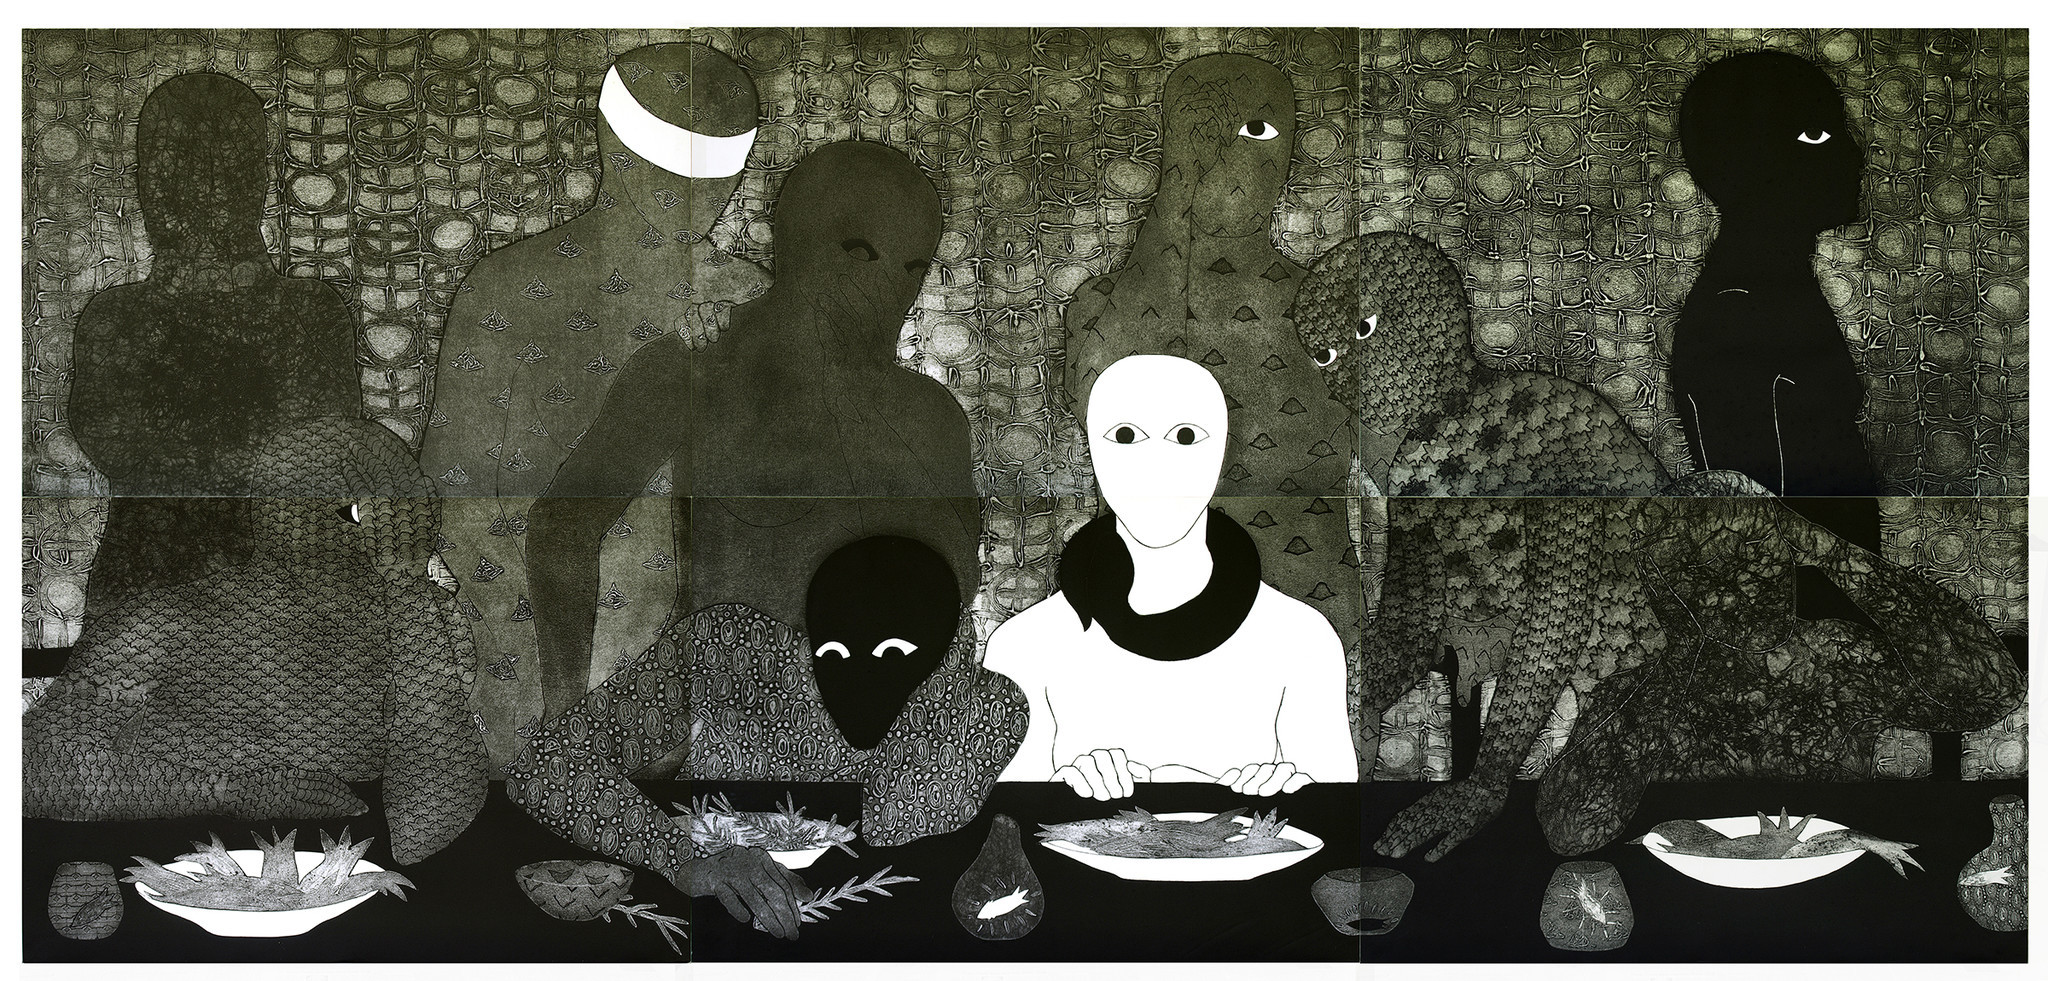 """La cena"" (""The Supper""), 1991."